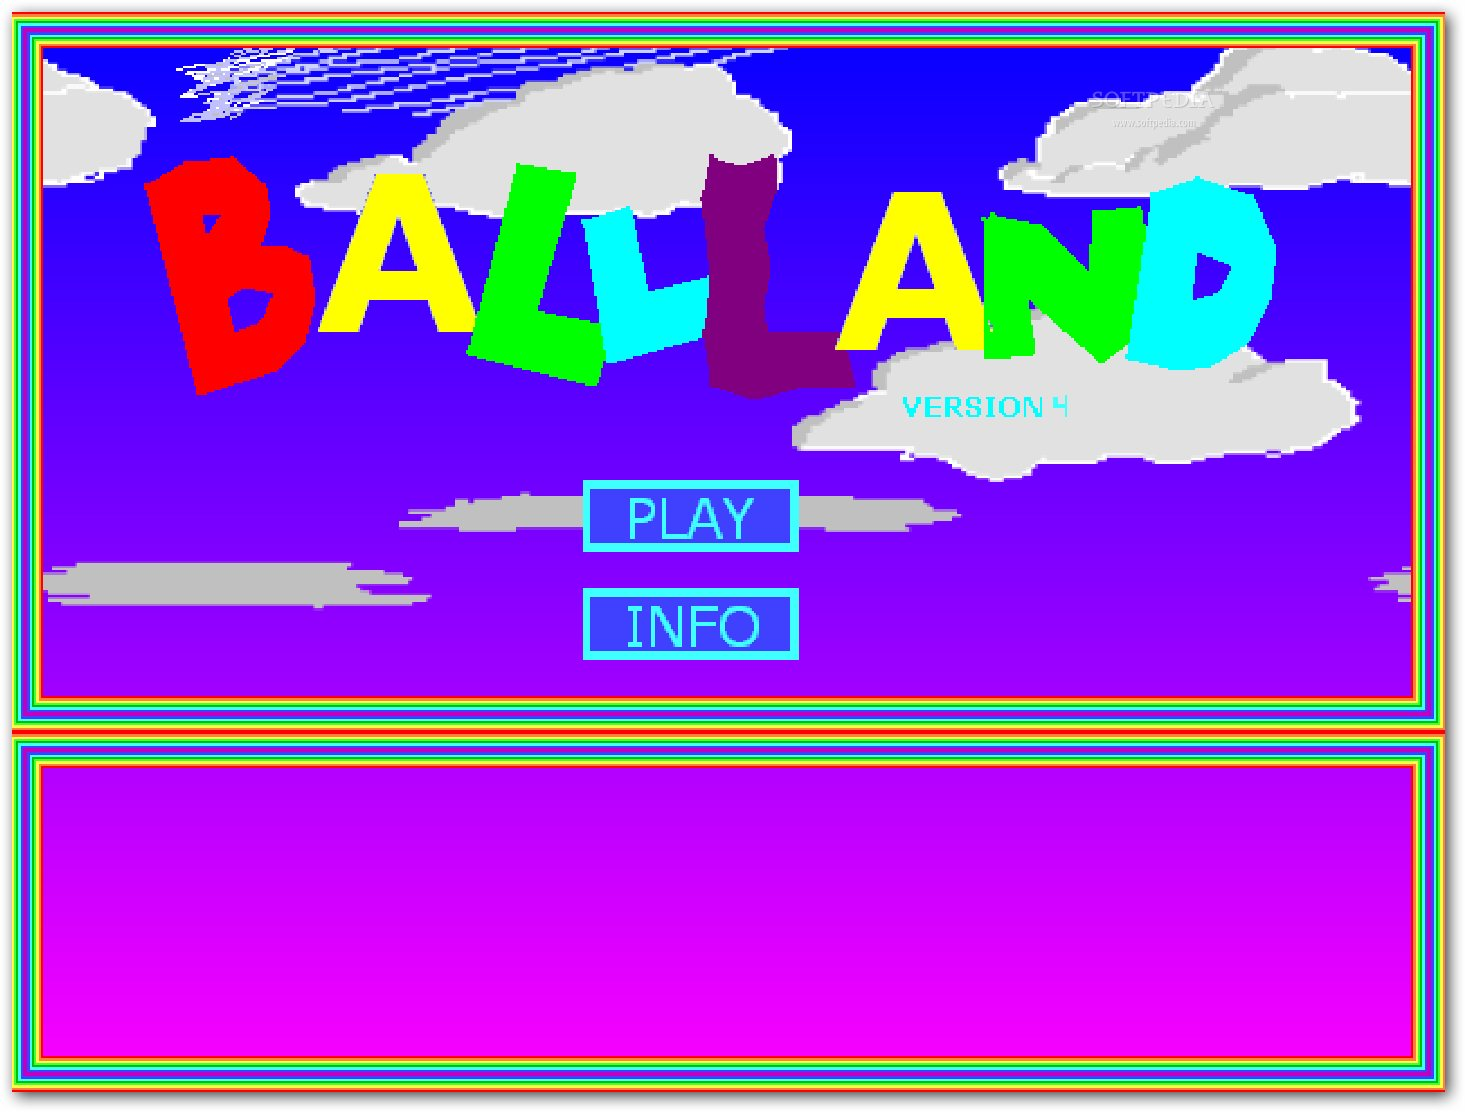 Ballland 4 screenshot 1